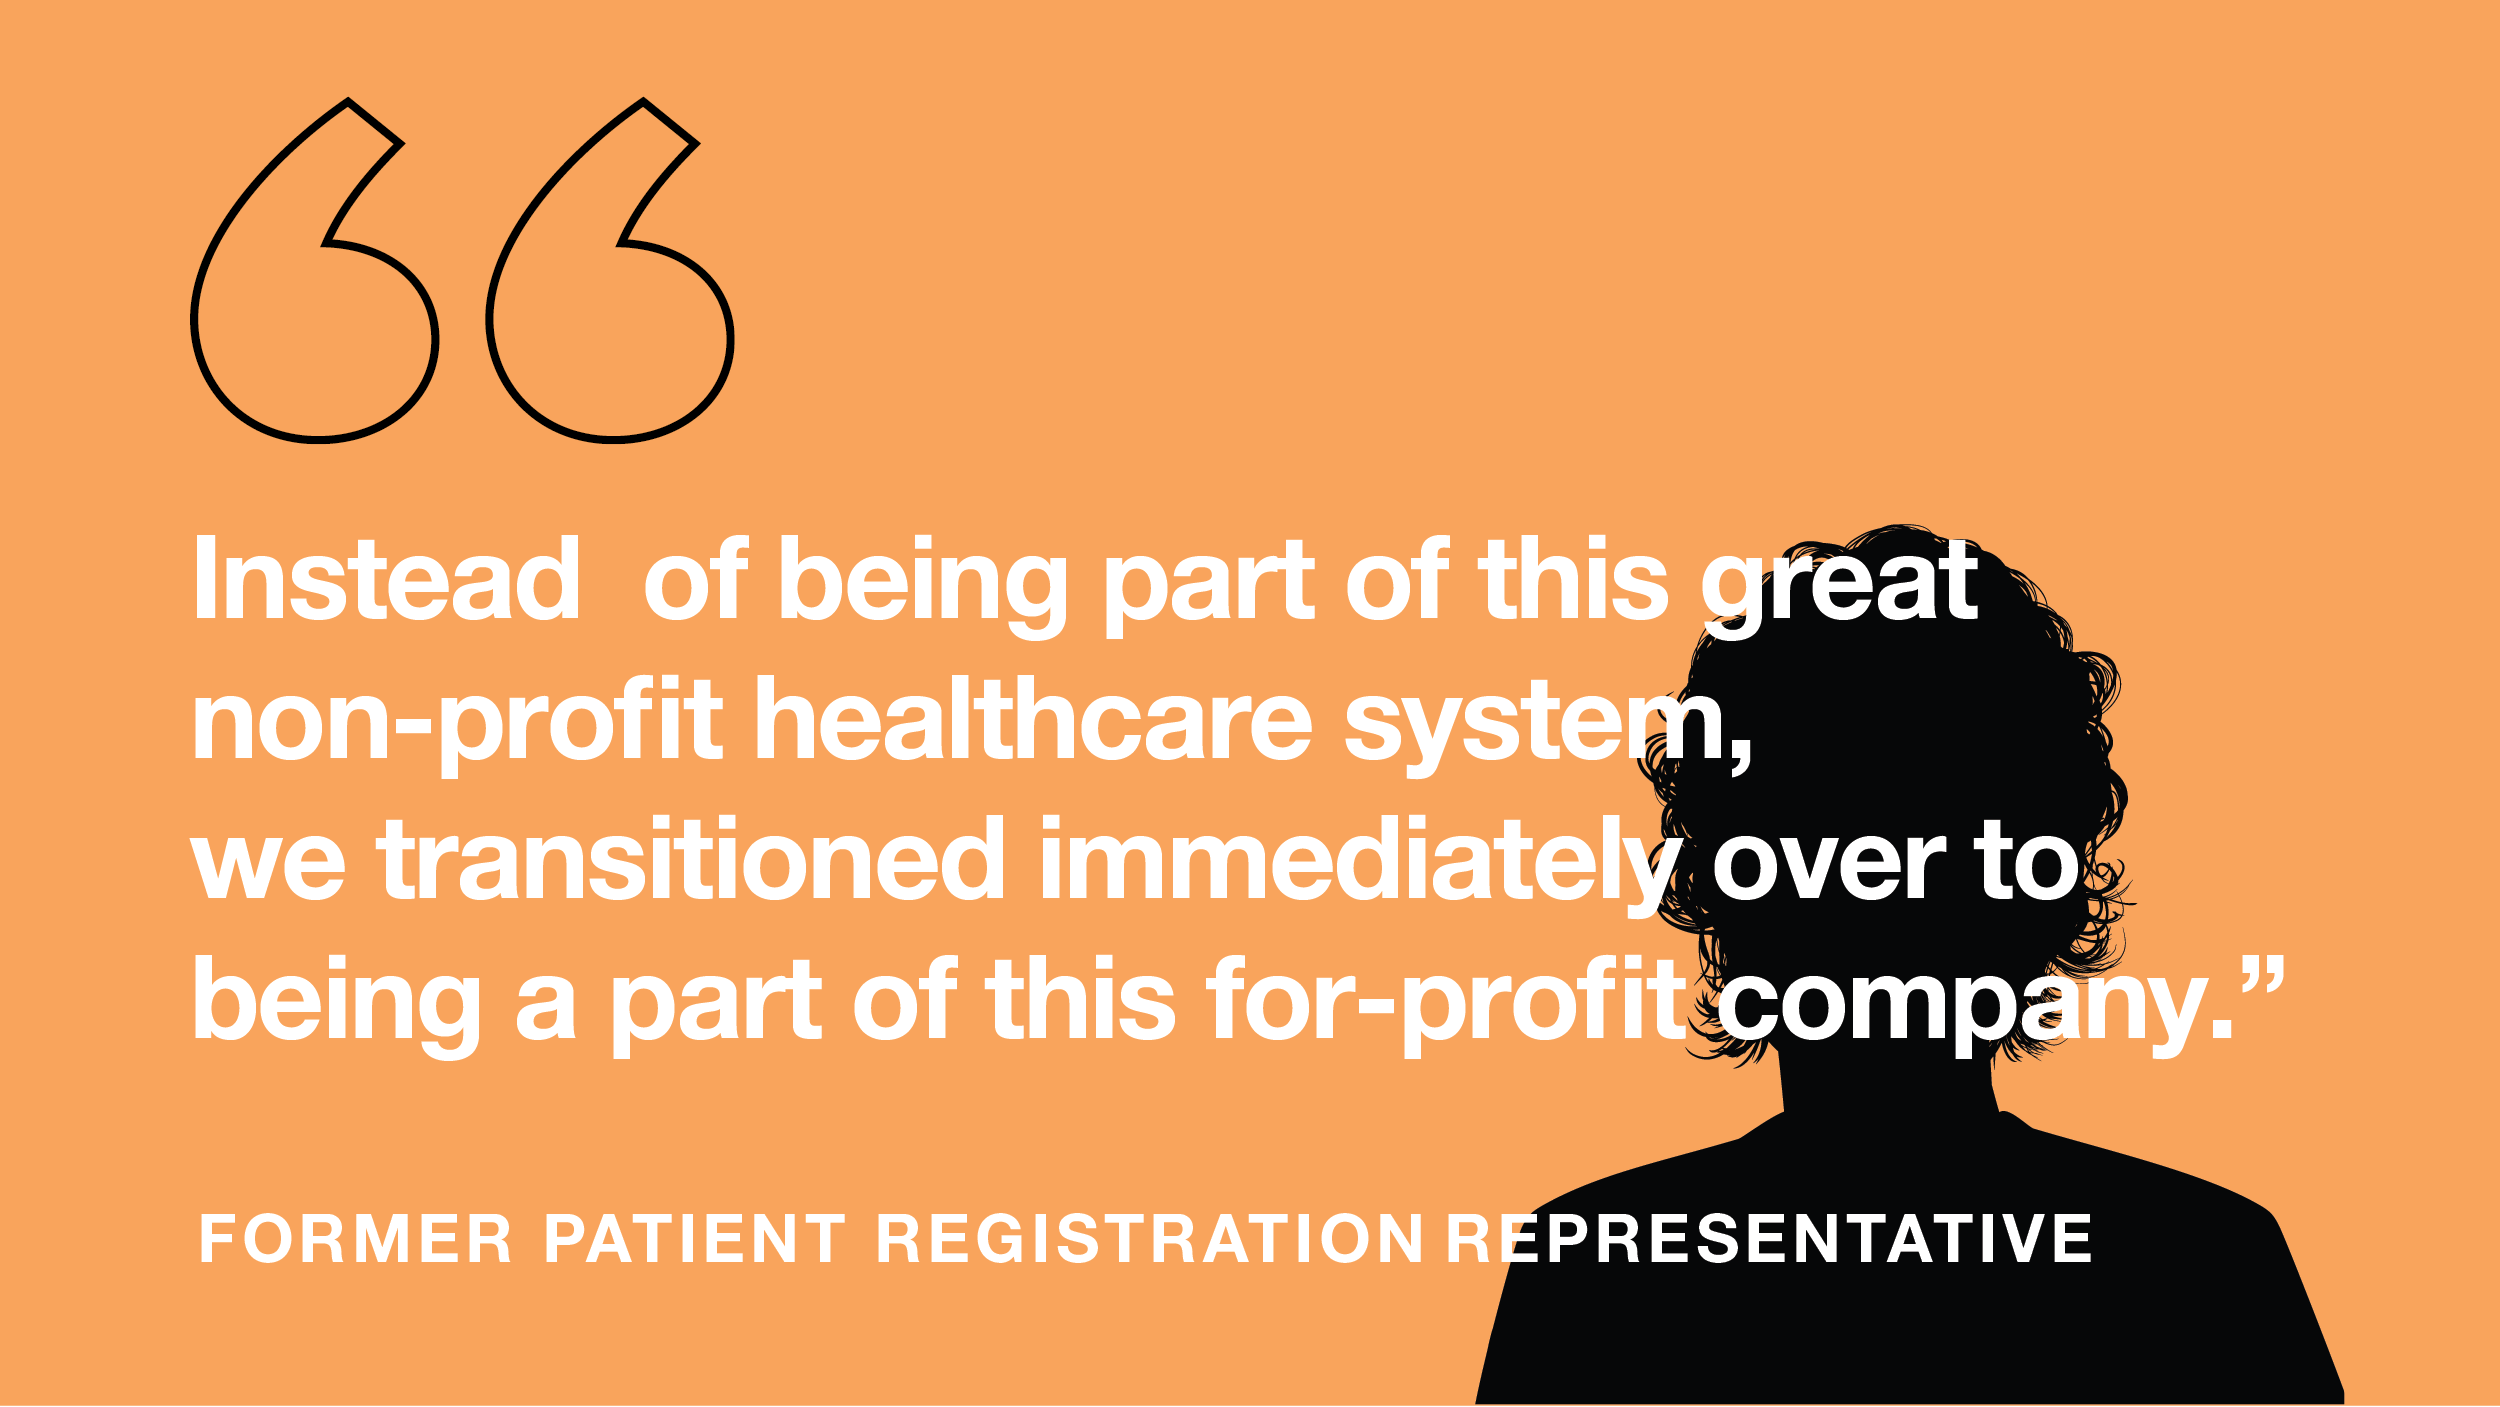 'Instead of being part of this great non-profit healthcare system, we transitioned immediately over to being a part of this for-profit company.